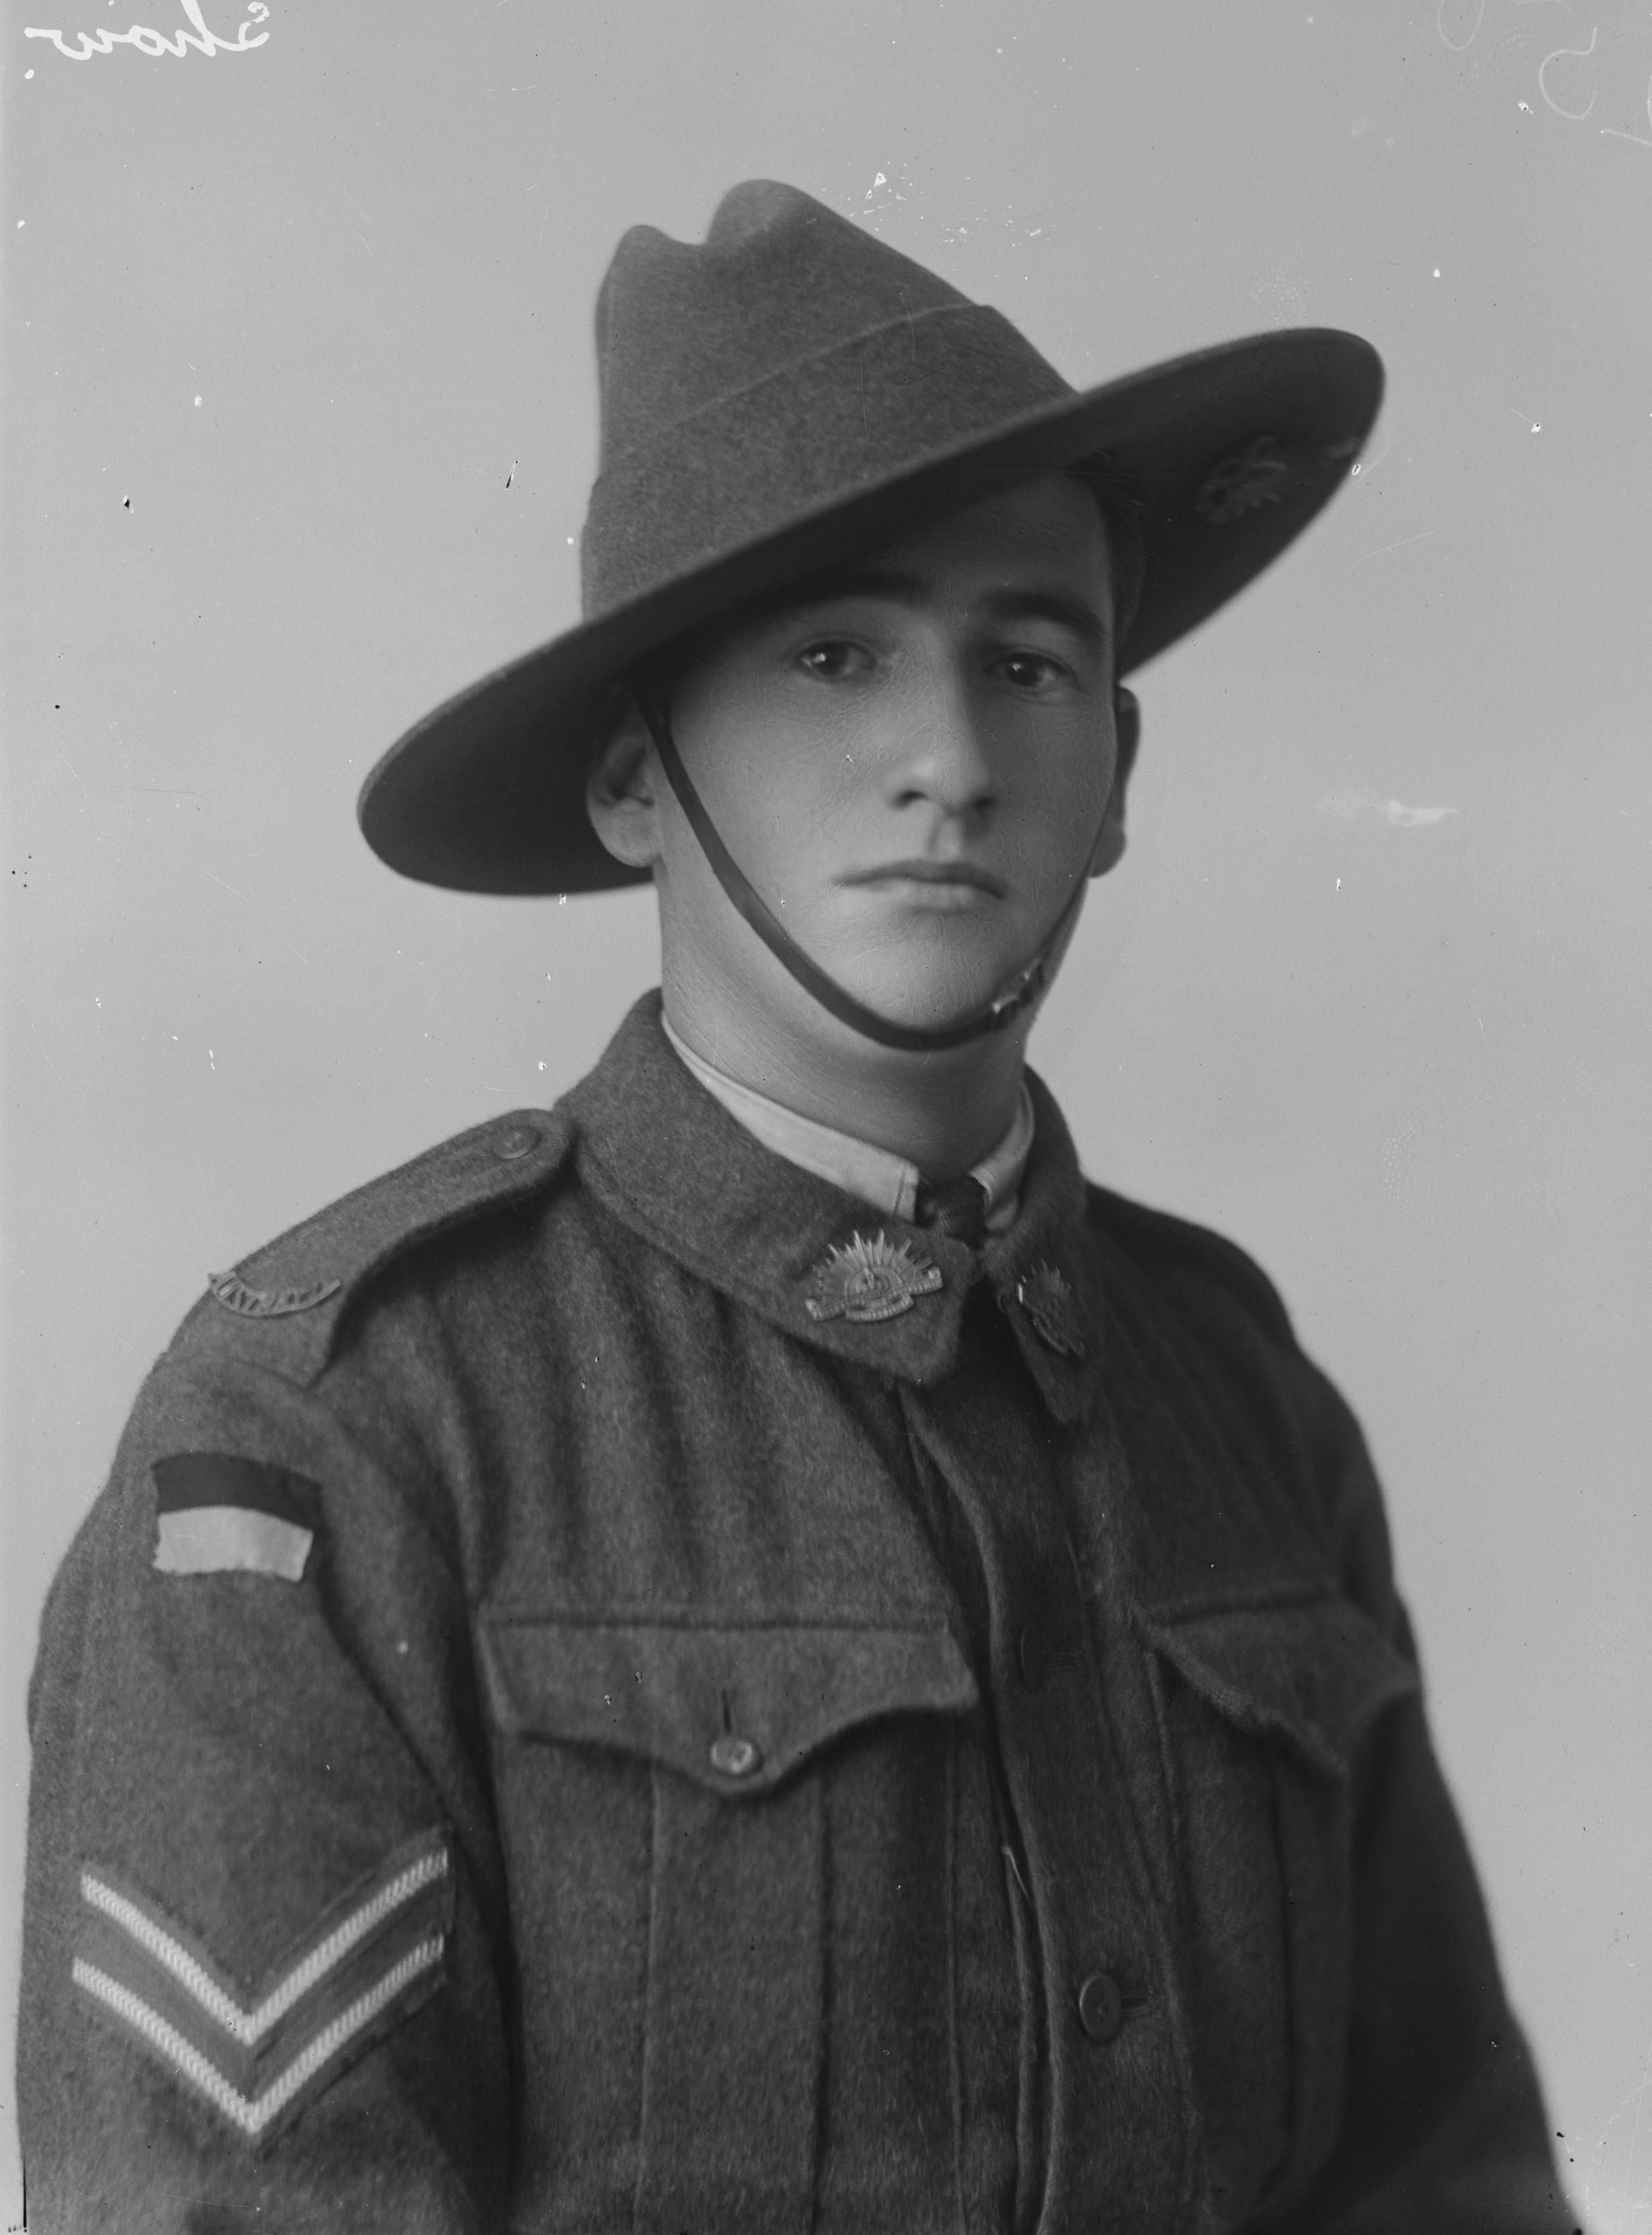 Photographed at the Dease Studio, 117 Barrack Street Perth WA Image courtesy of the State Library of Western Australia: 108049PD